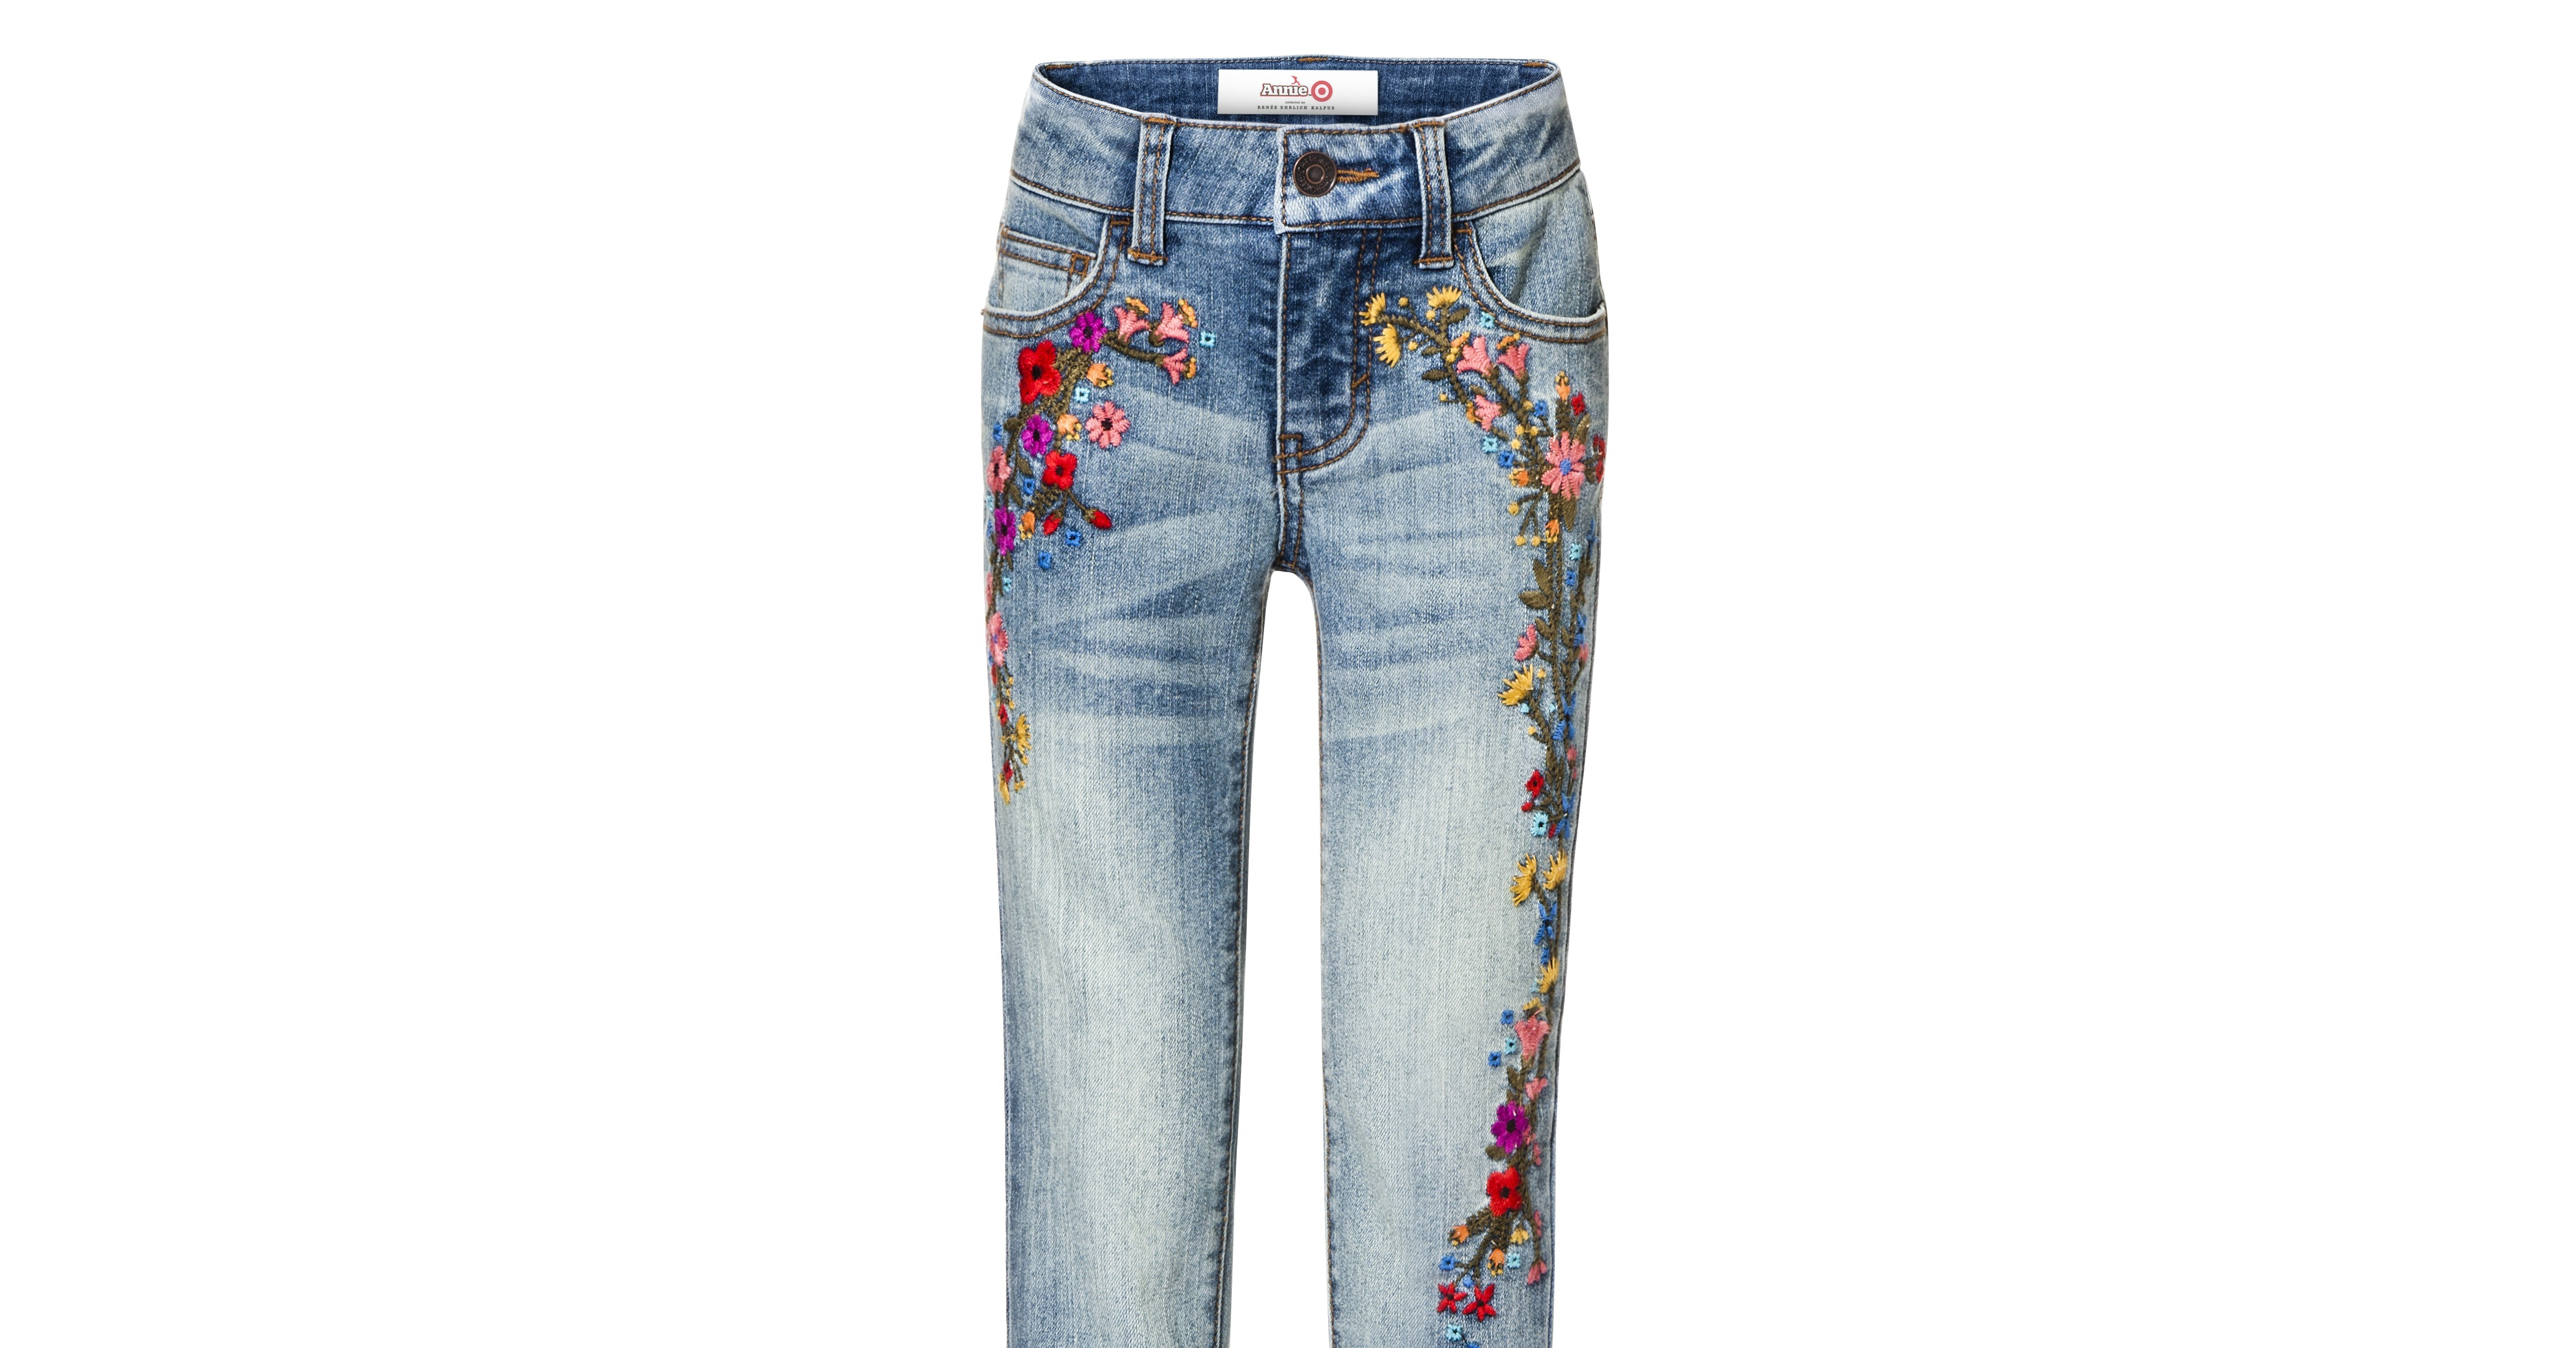 Floral embroidered jeans target s newest collection will